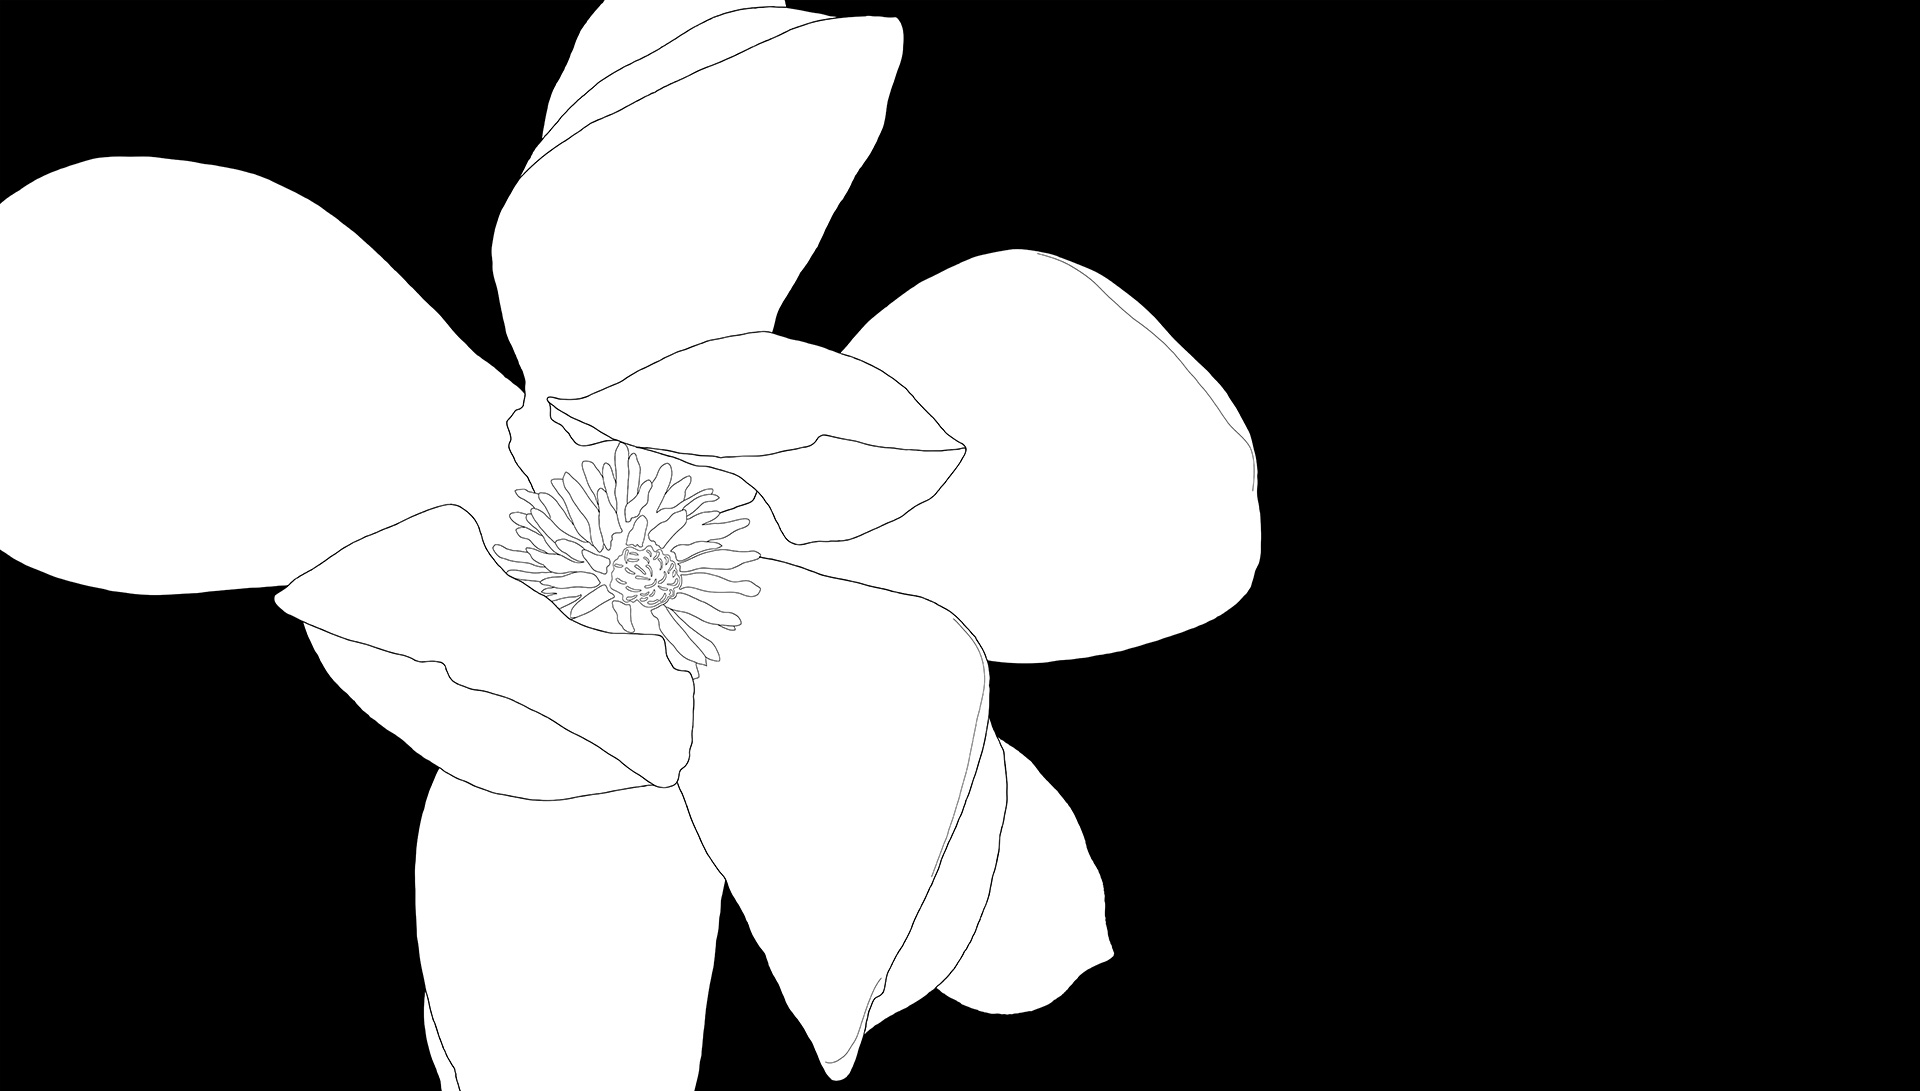 Magnolia 3253 BW Drawing